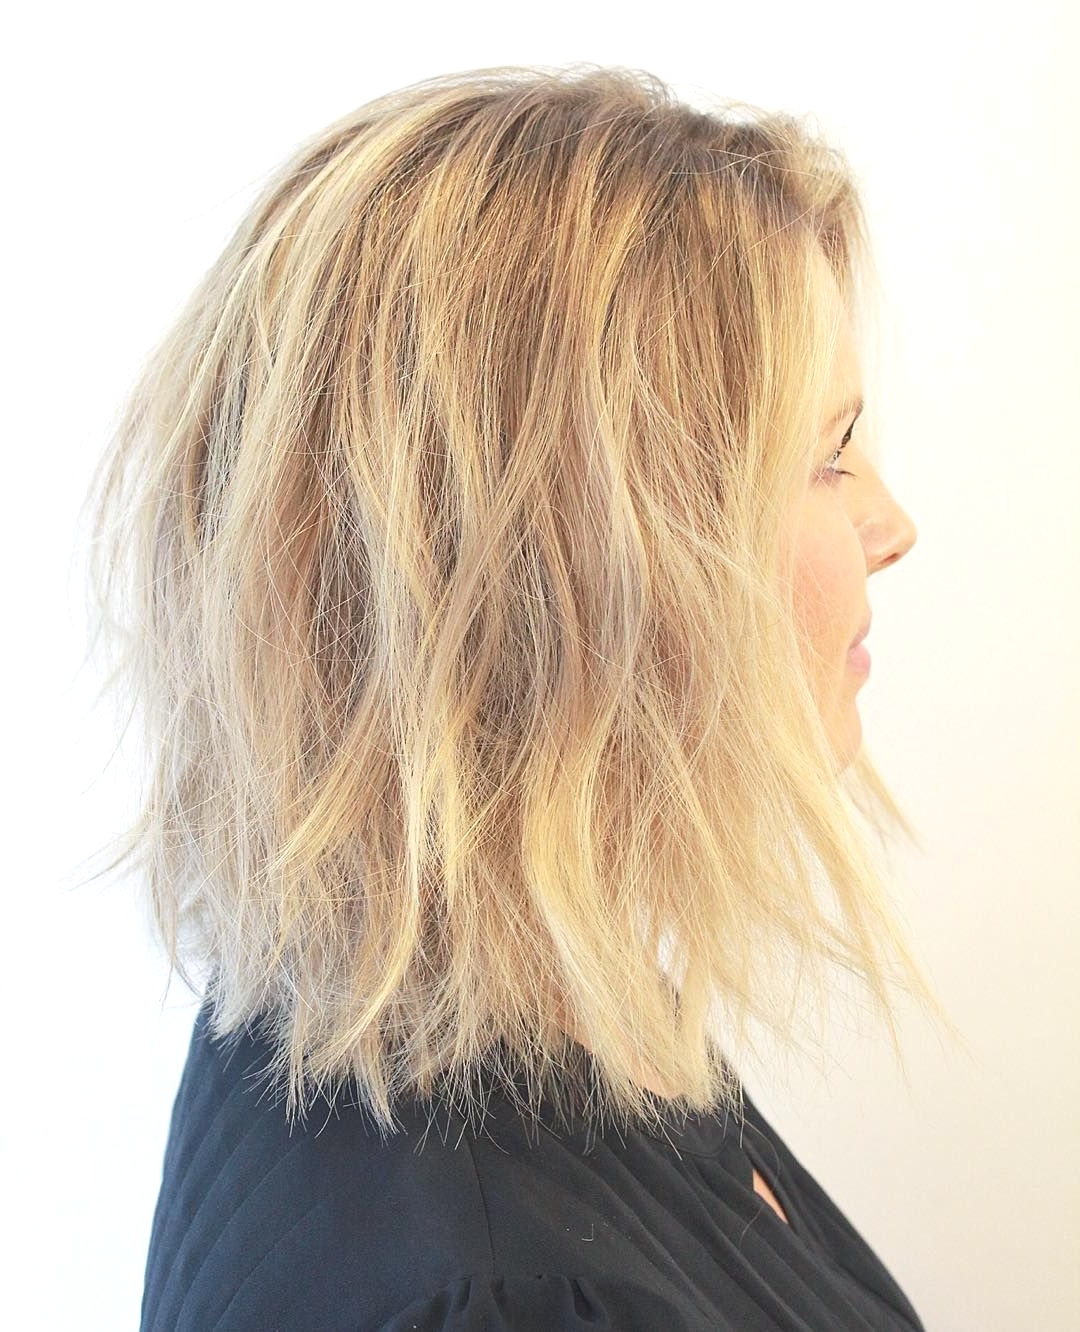 Hairstyles : Bed Head Hairstyle Marvellous Shake With Chunky Choppy In Famous Bedhead Layers For Long Hairstyles (View 13 of 20)